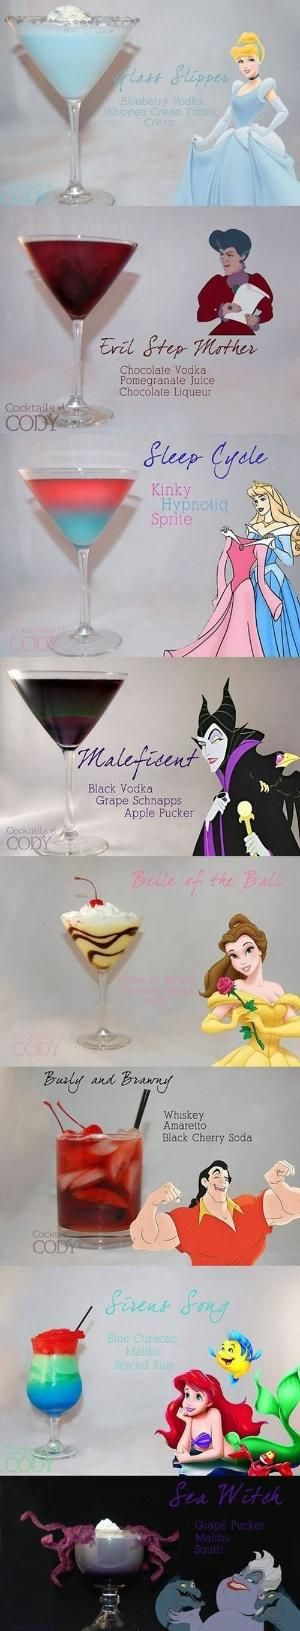 Disney princess and Disney villain inspired drinks - pure. brilliance. by kimberly